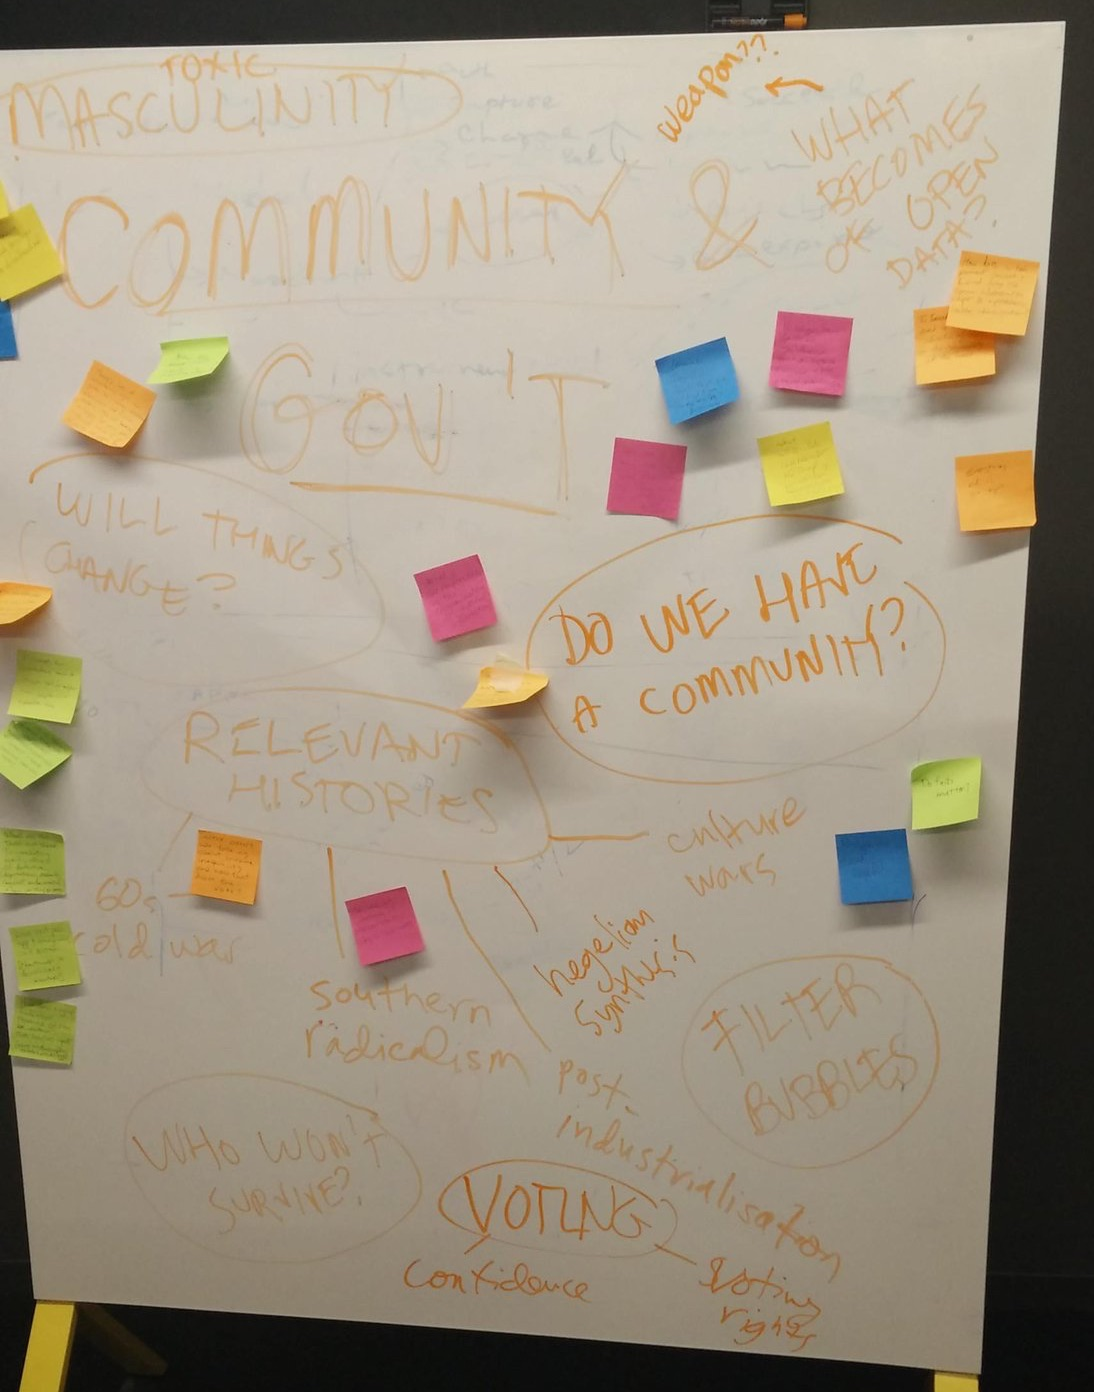 Question 1: How are you feeling about community and government right now?